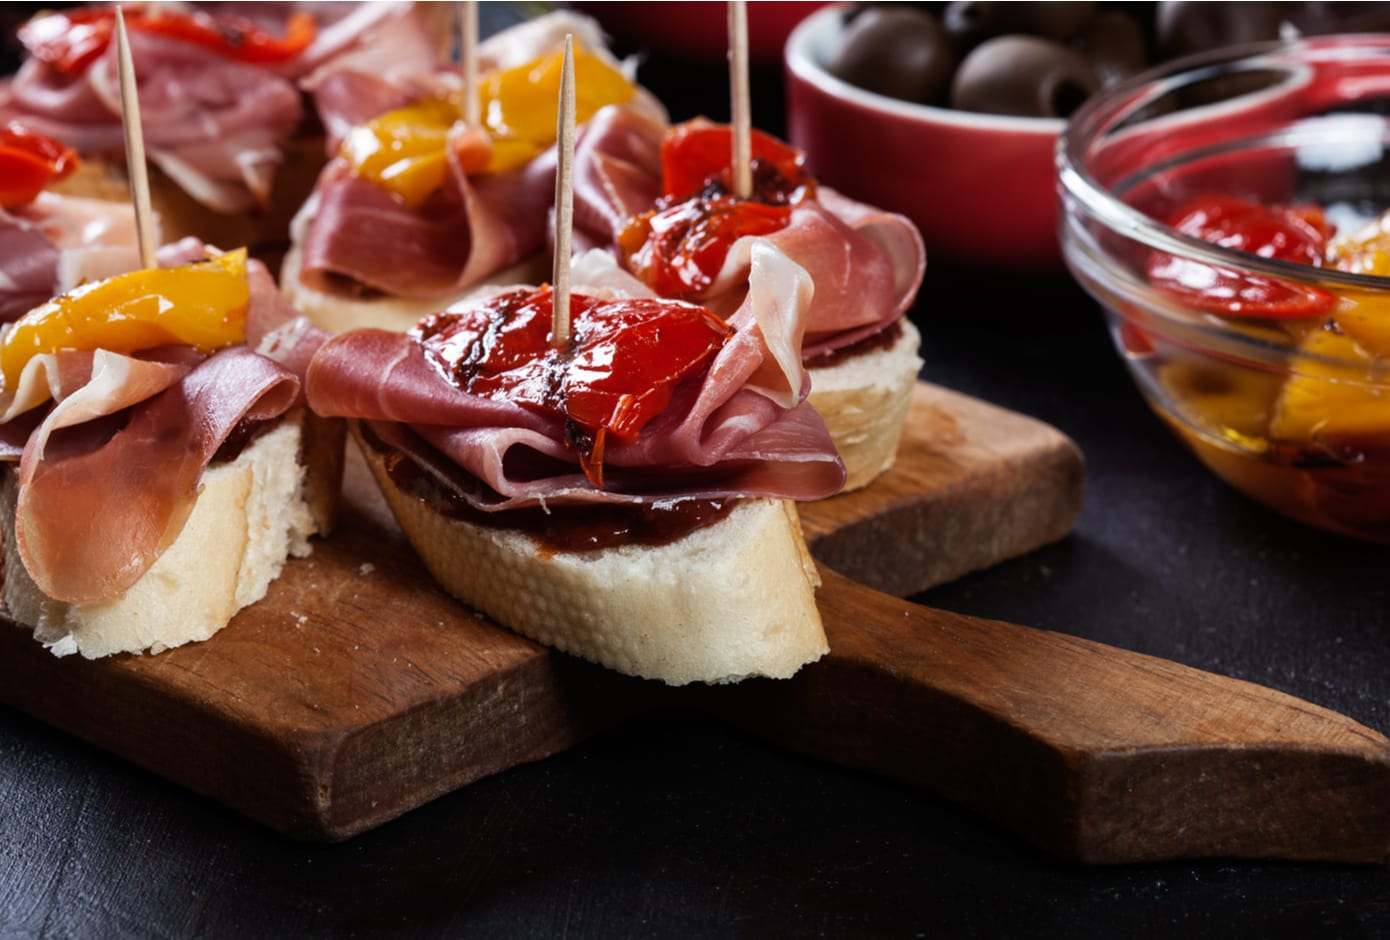 Spanish tapas with slices jamon serrano and grilled pepper.